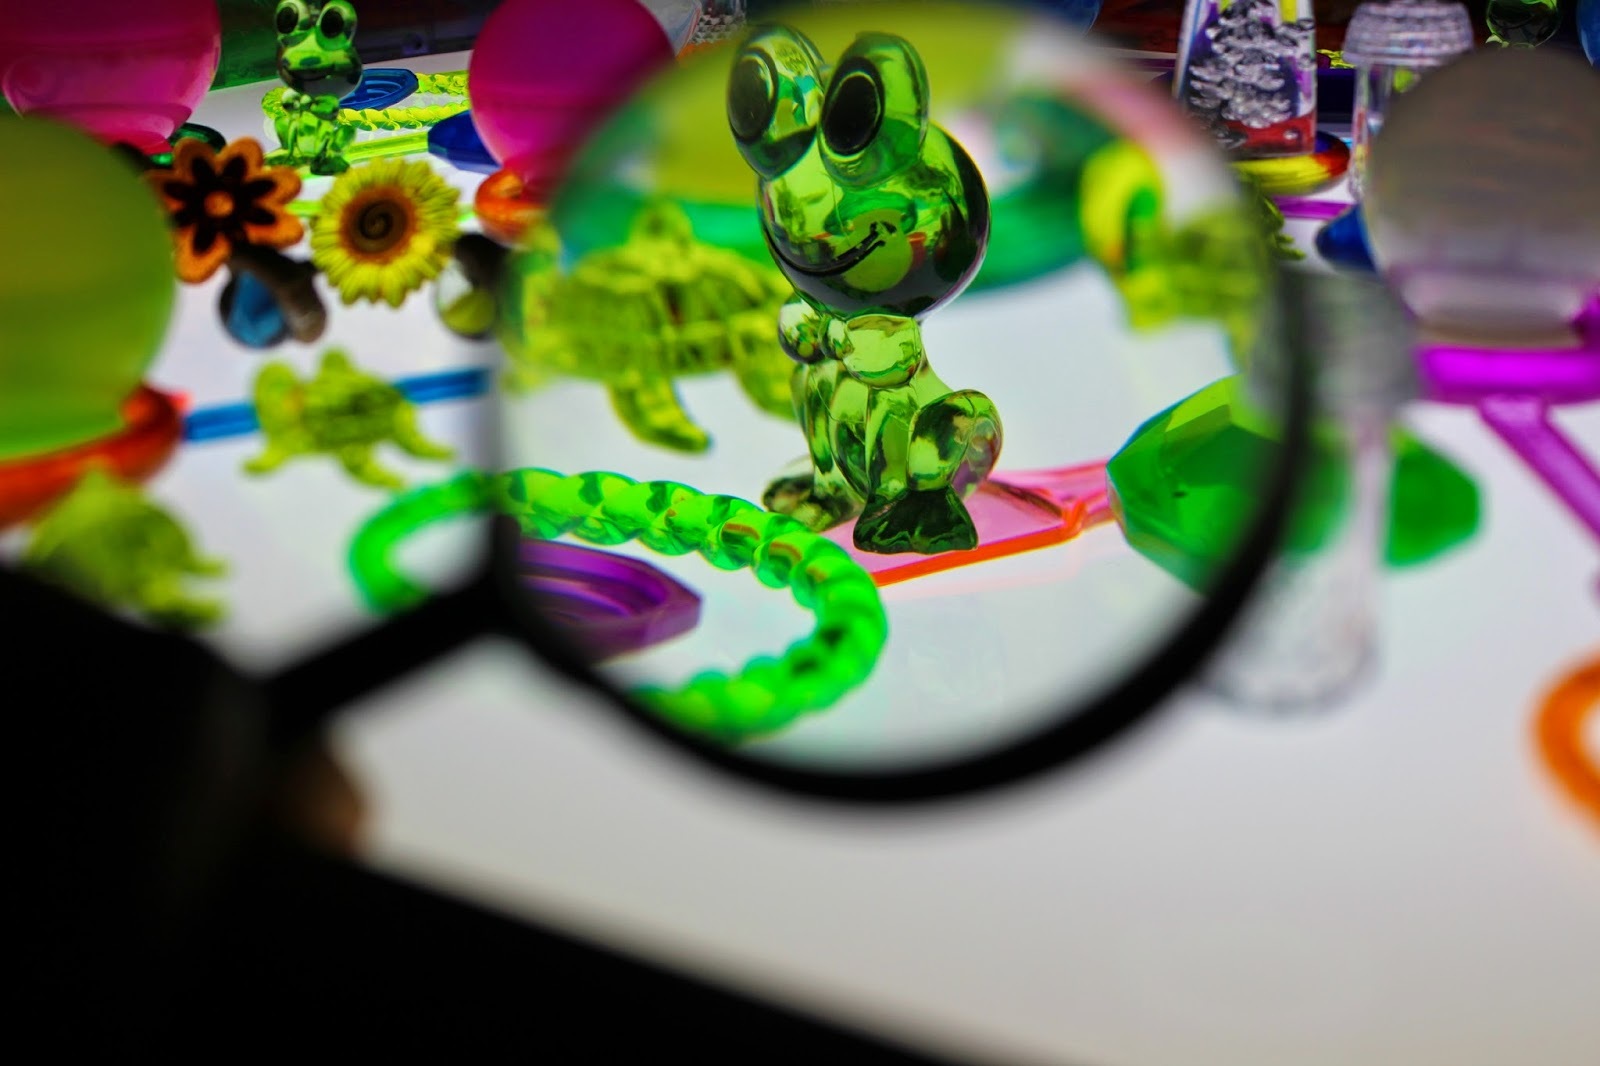 a frog close up with a magnifying glass on the light table